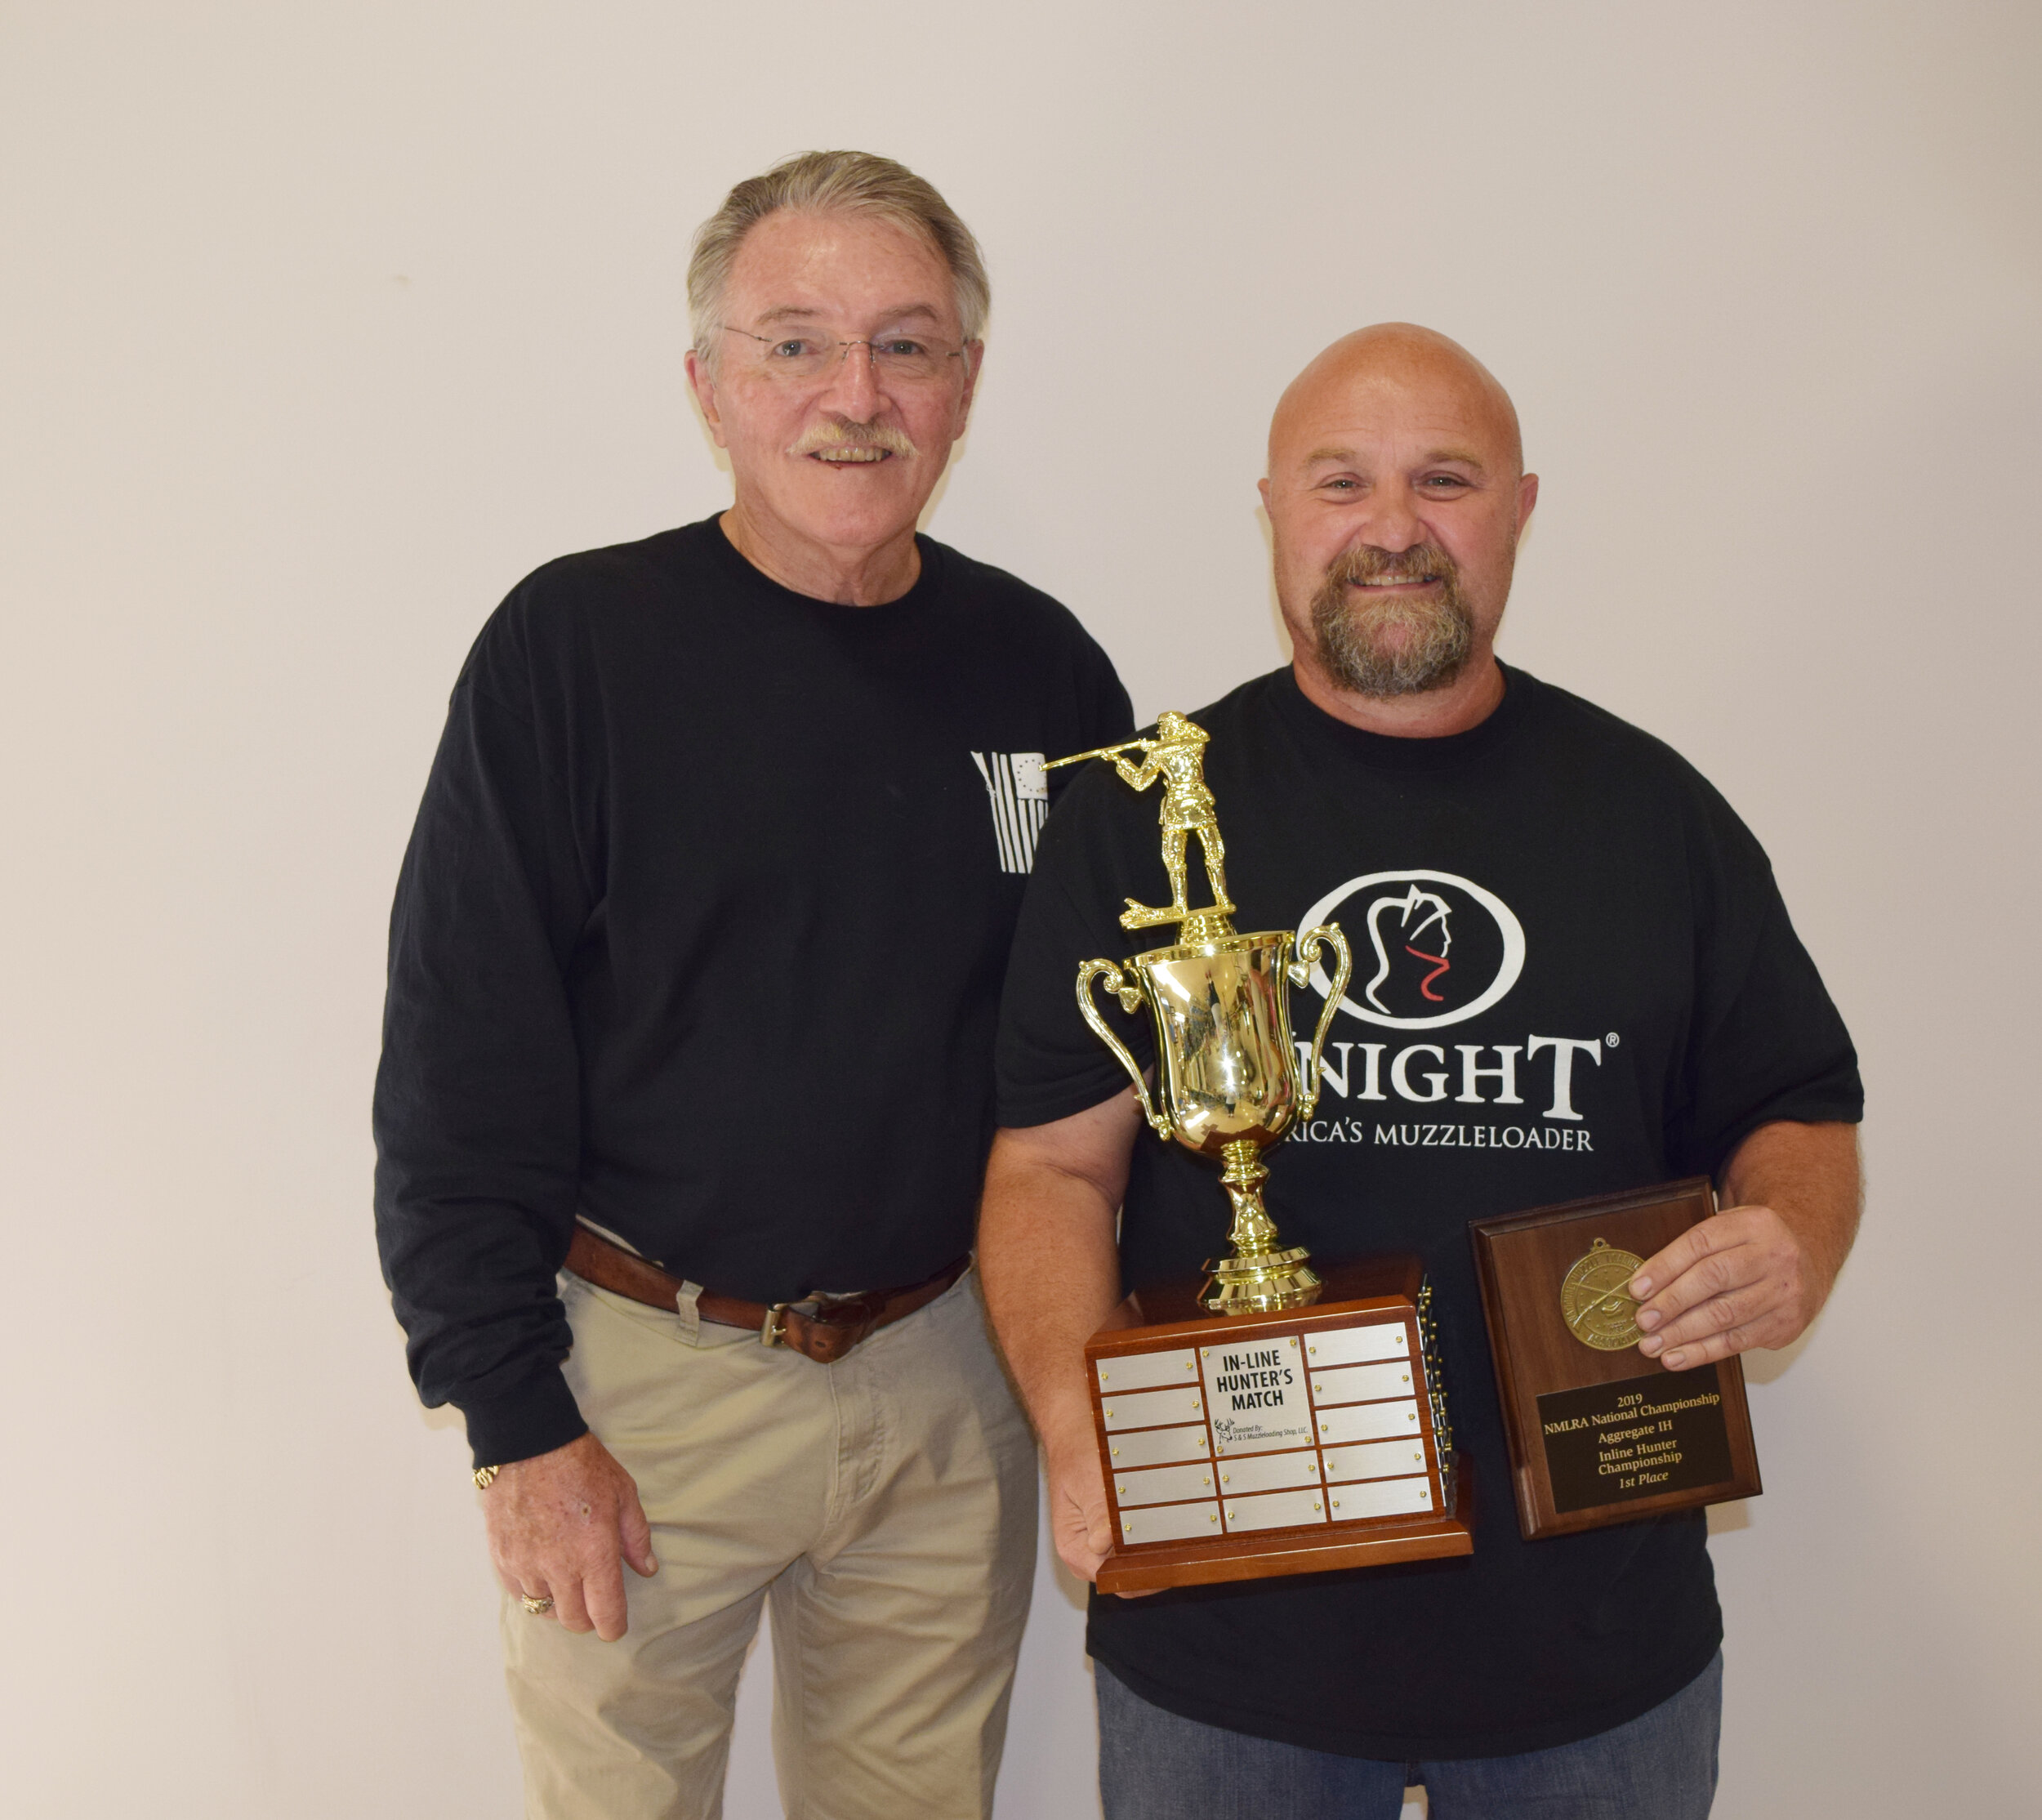 Doug Schwartz - Aggregate IH - Inline Hunter Championship Winner with NMLRA President Brent Steele - Doug also sat a new record for this aggregate